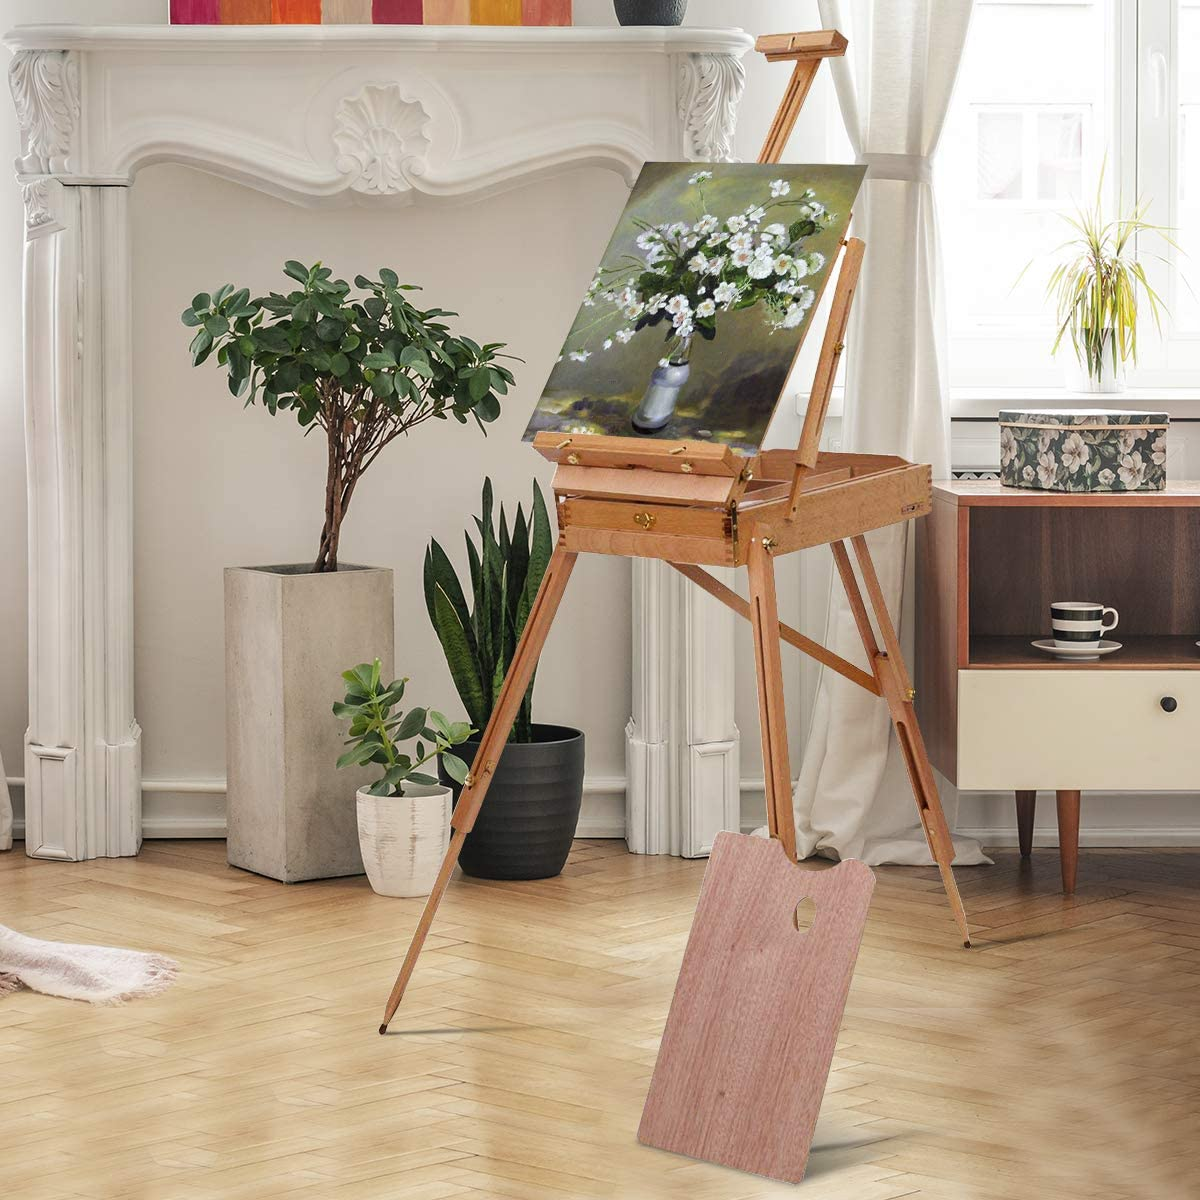 Tangkula Wooden French Easel Stand with Sketch Box